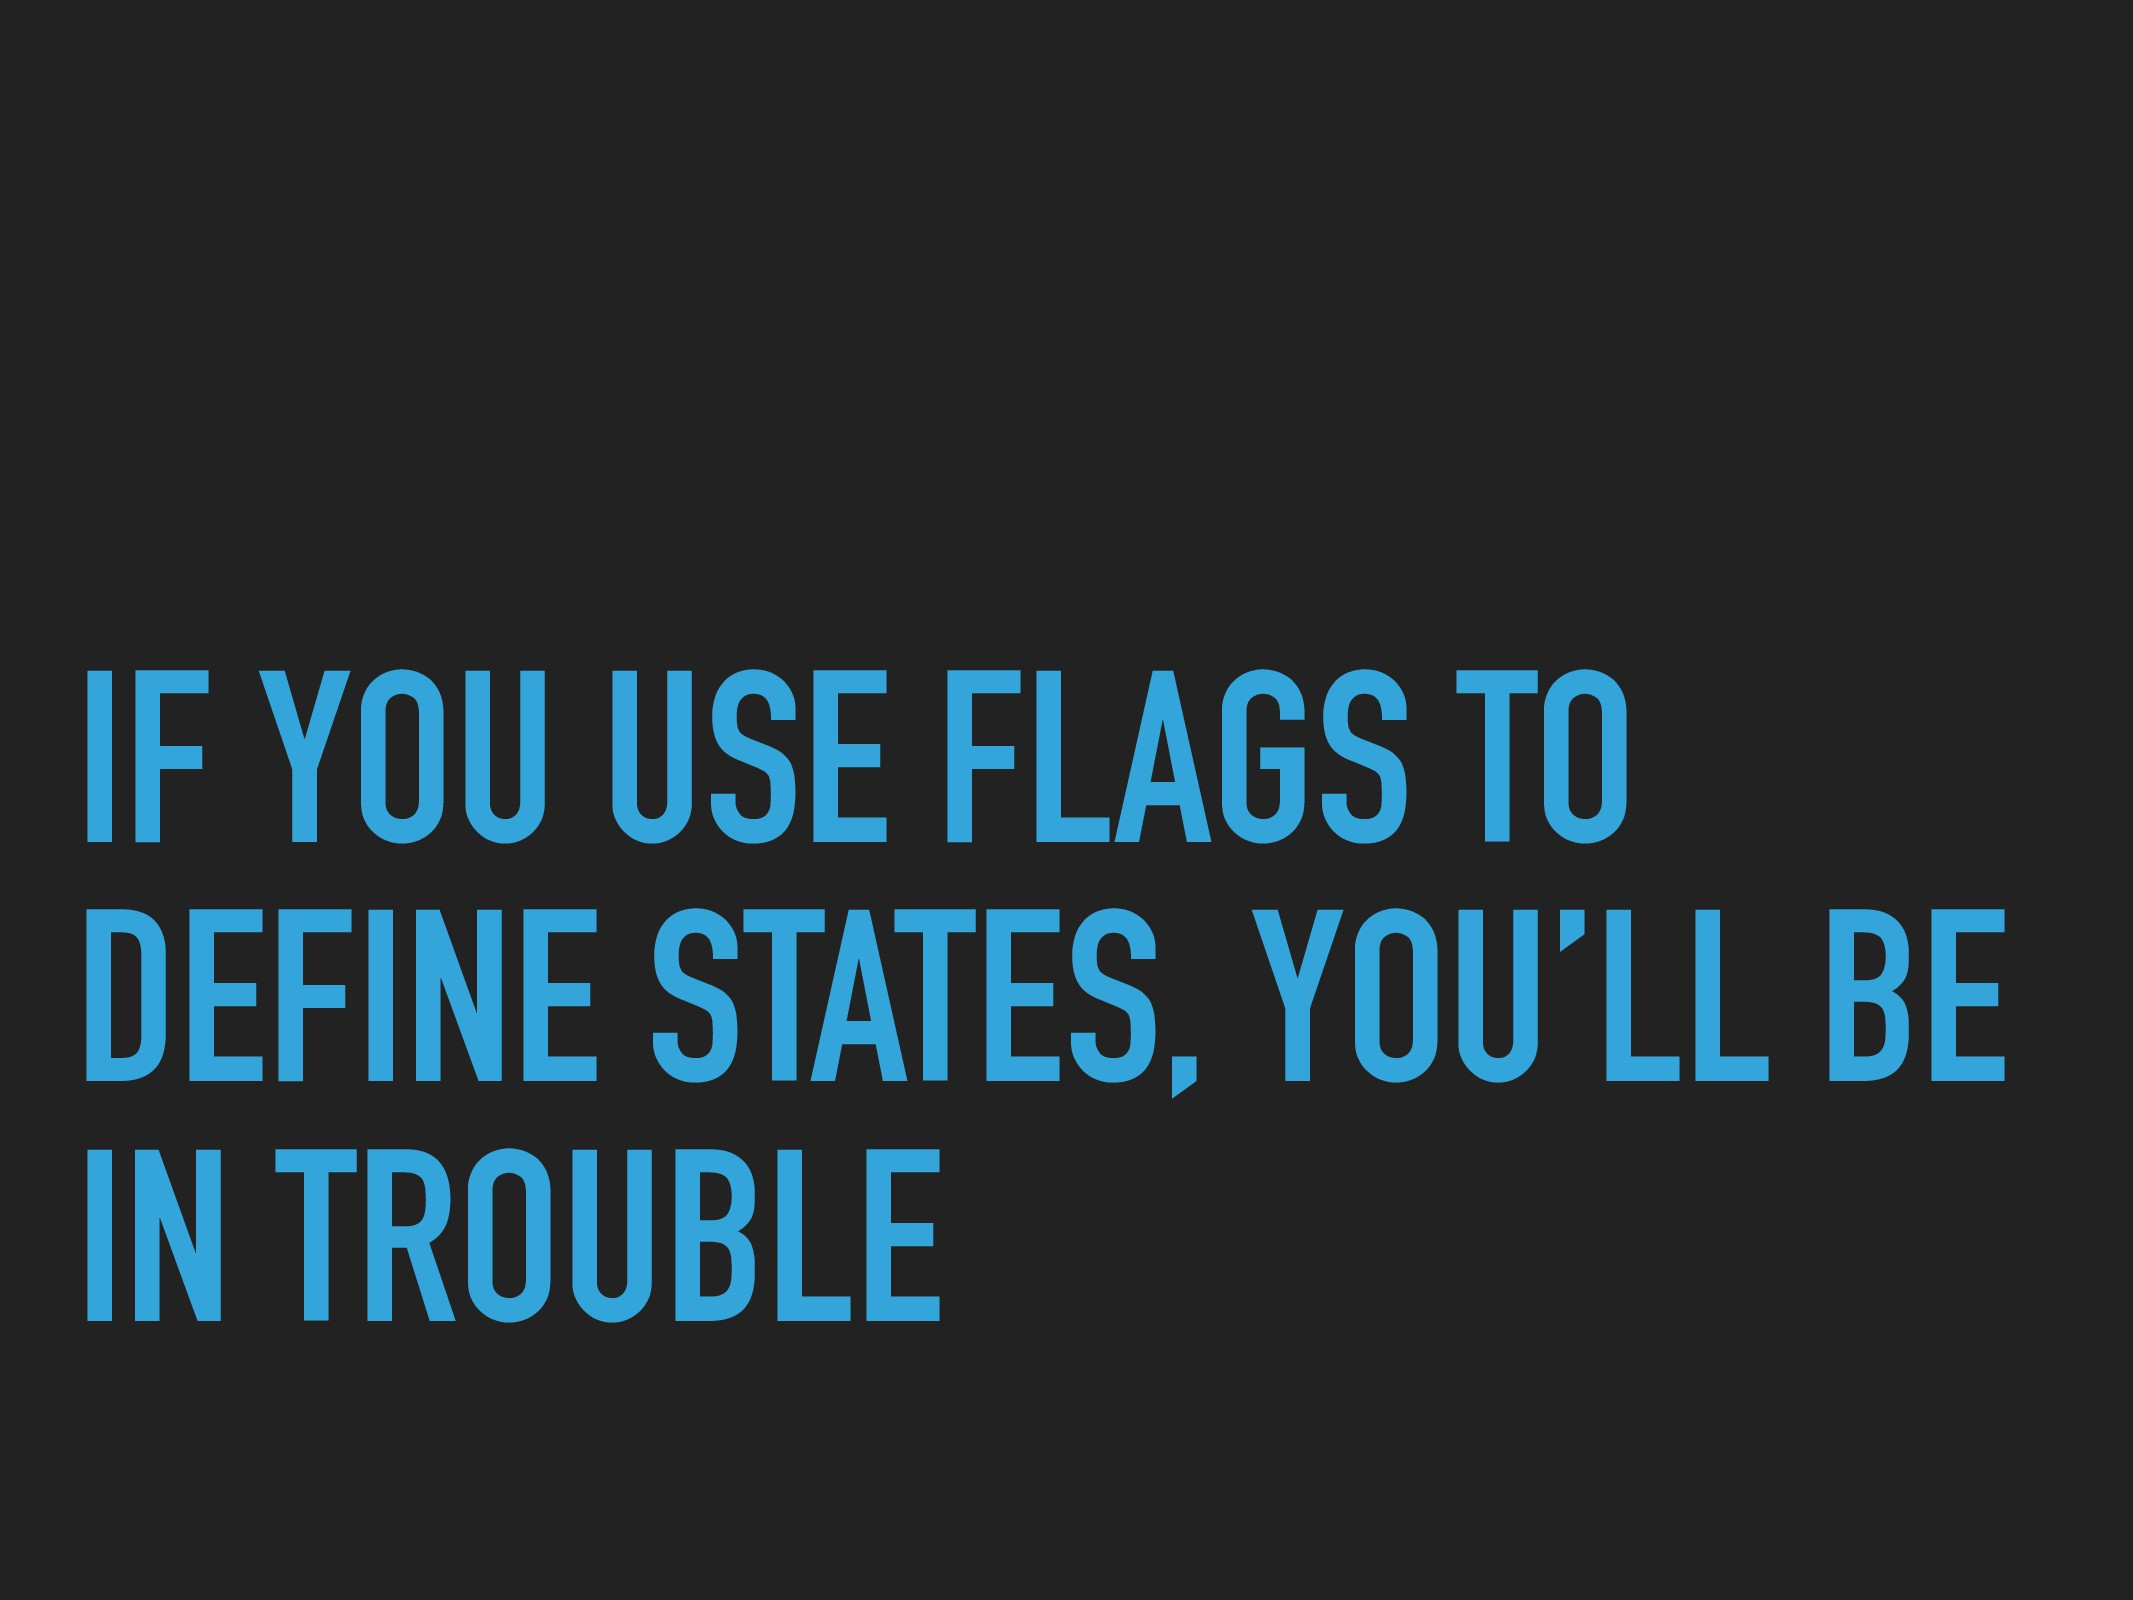 IF YOU USE FLAGS TO DEFINE STATES, YOU'LL BE IN...